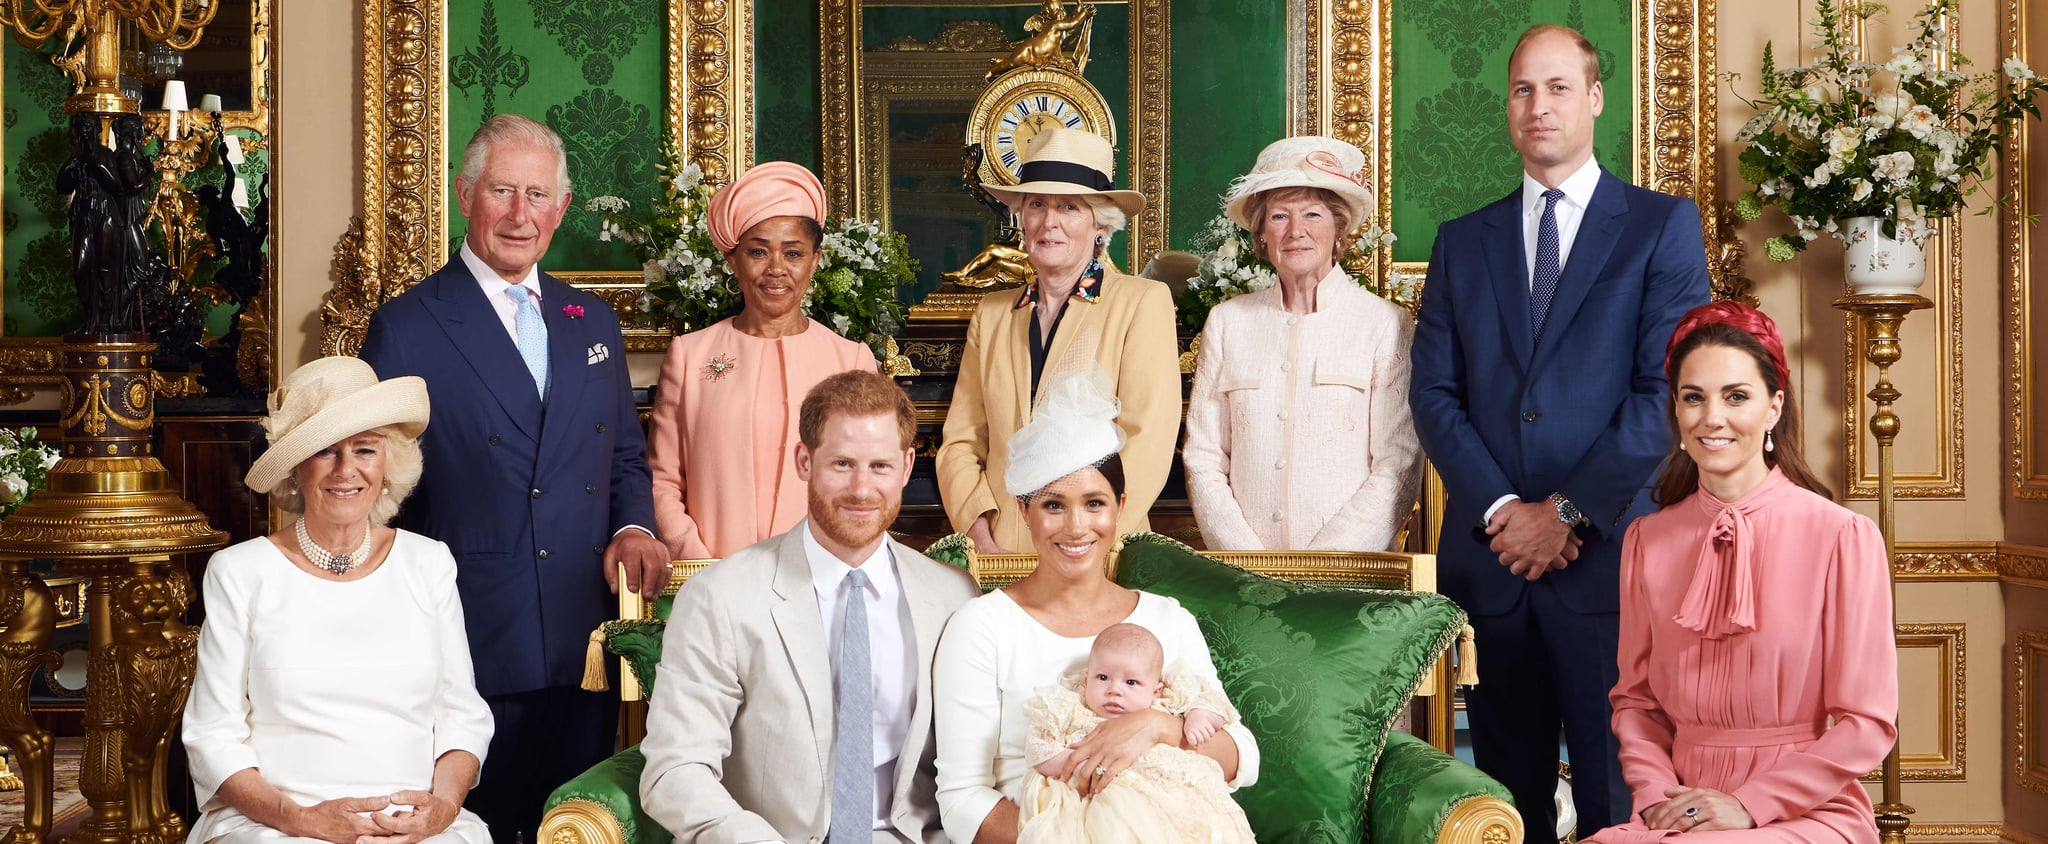 Facts About the British Royal Family We Learned in 2019